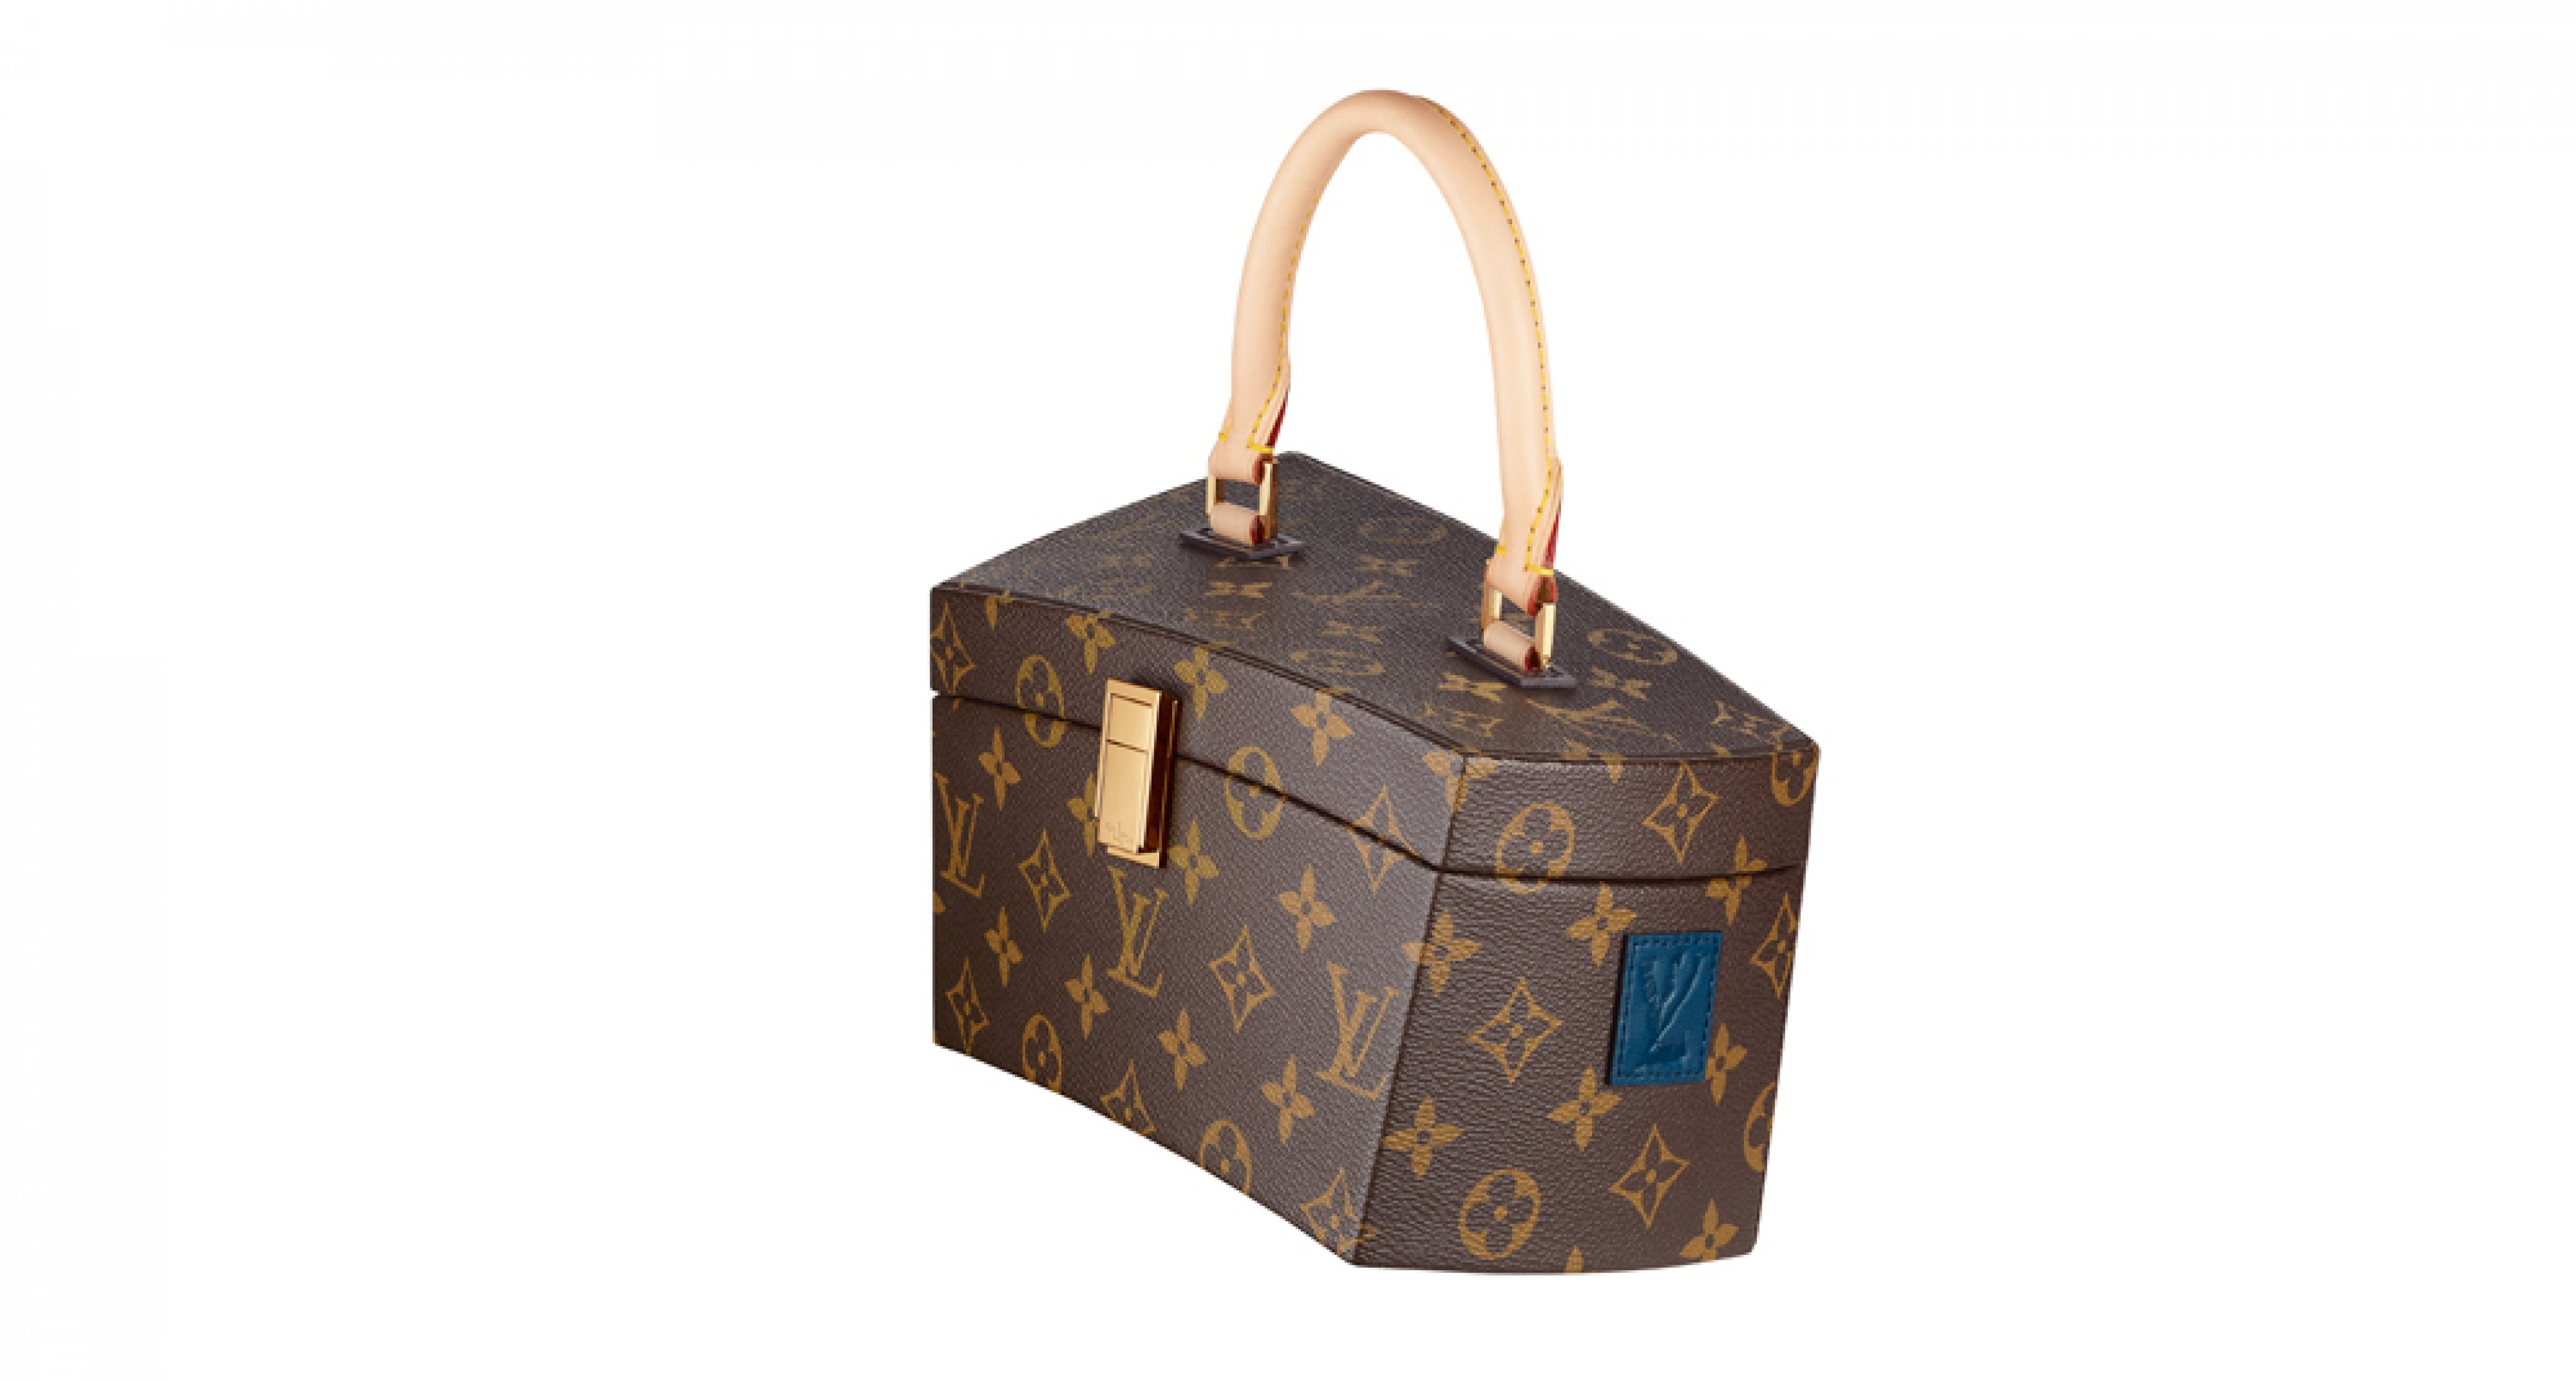 Frank Gehry for Louis Vuitton.